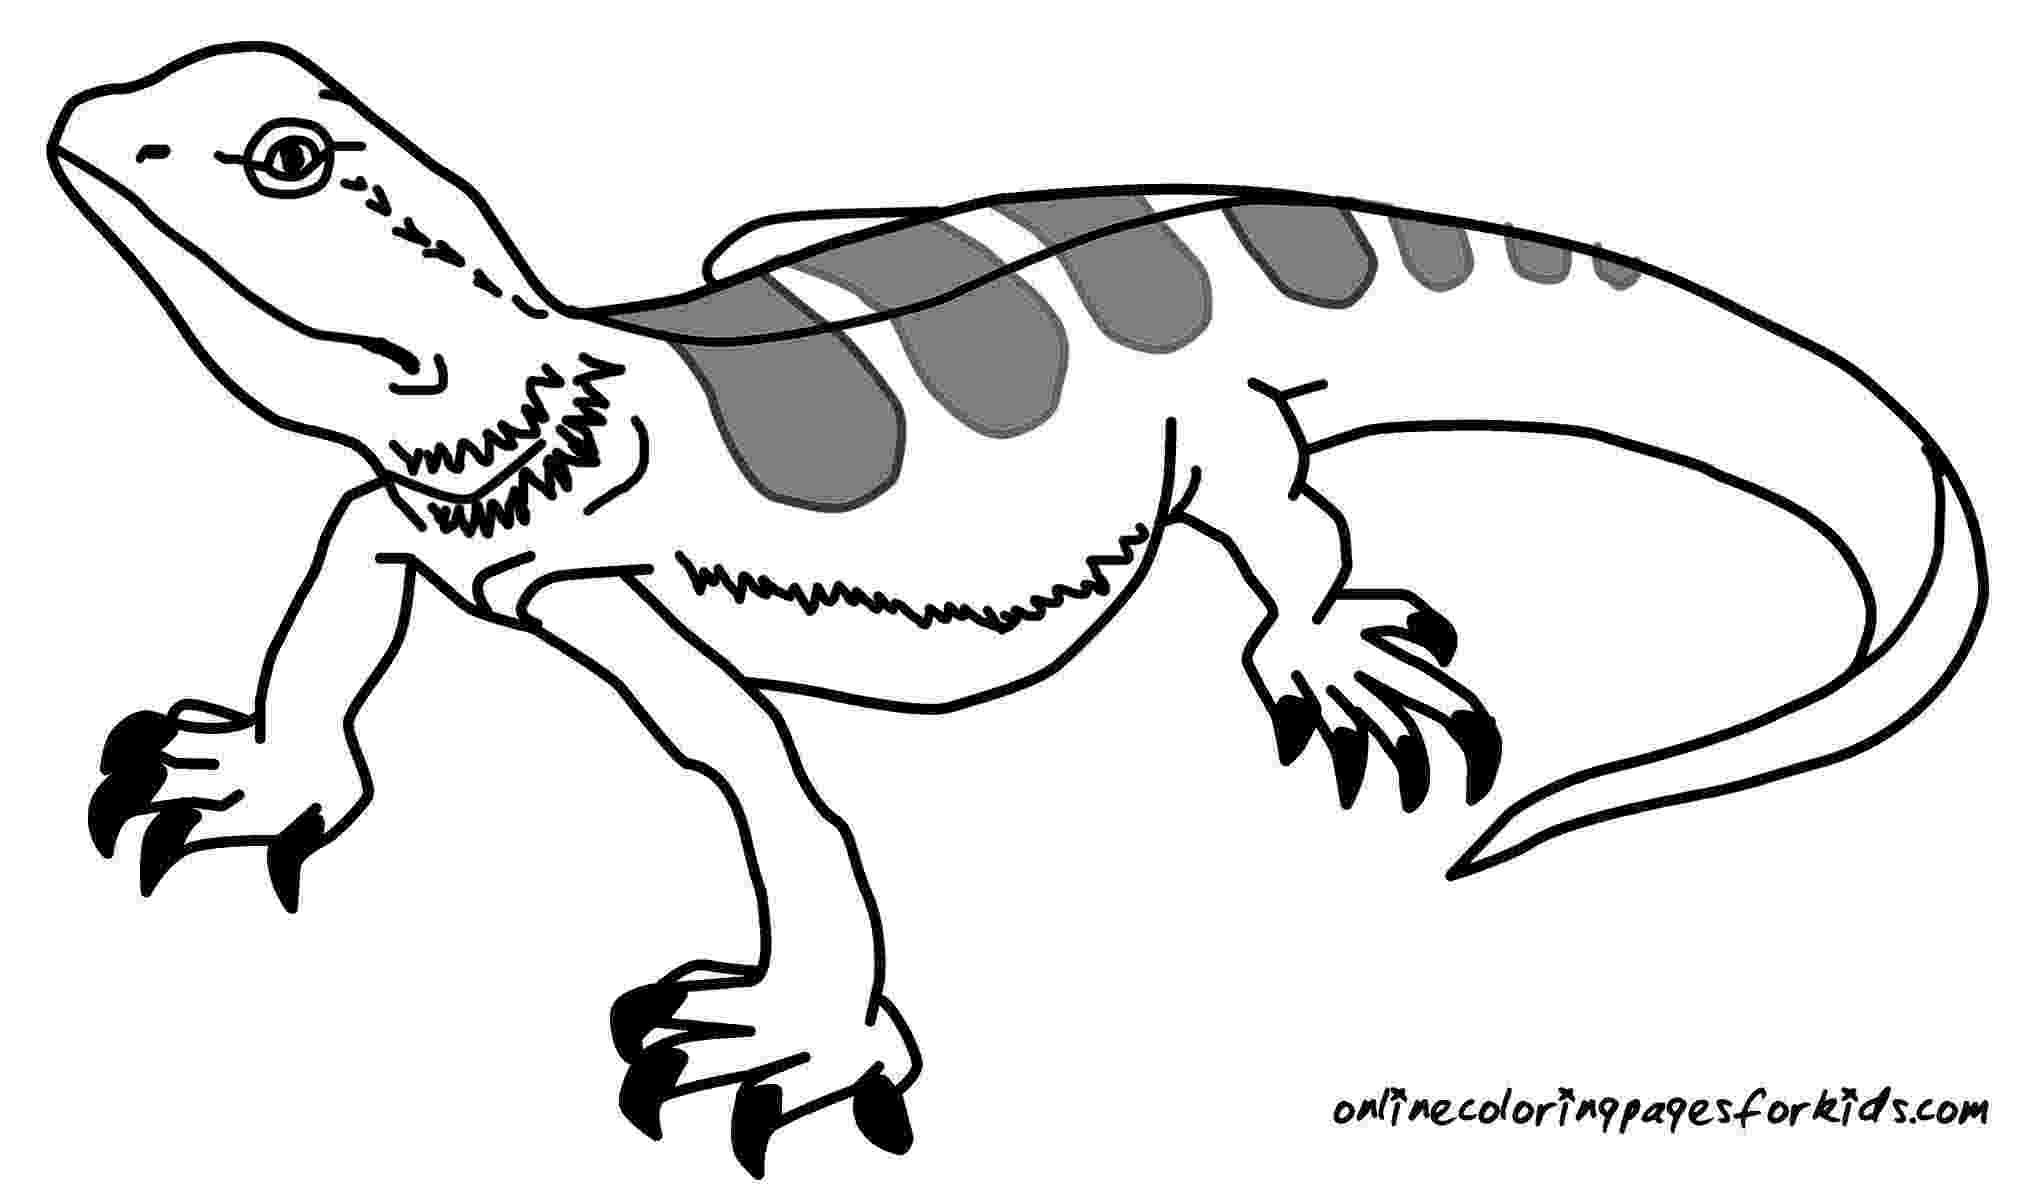 coloring page lizard free printable lizard coloring pages for kids animal place page coloring lizard